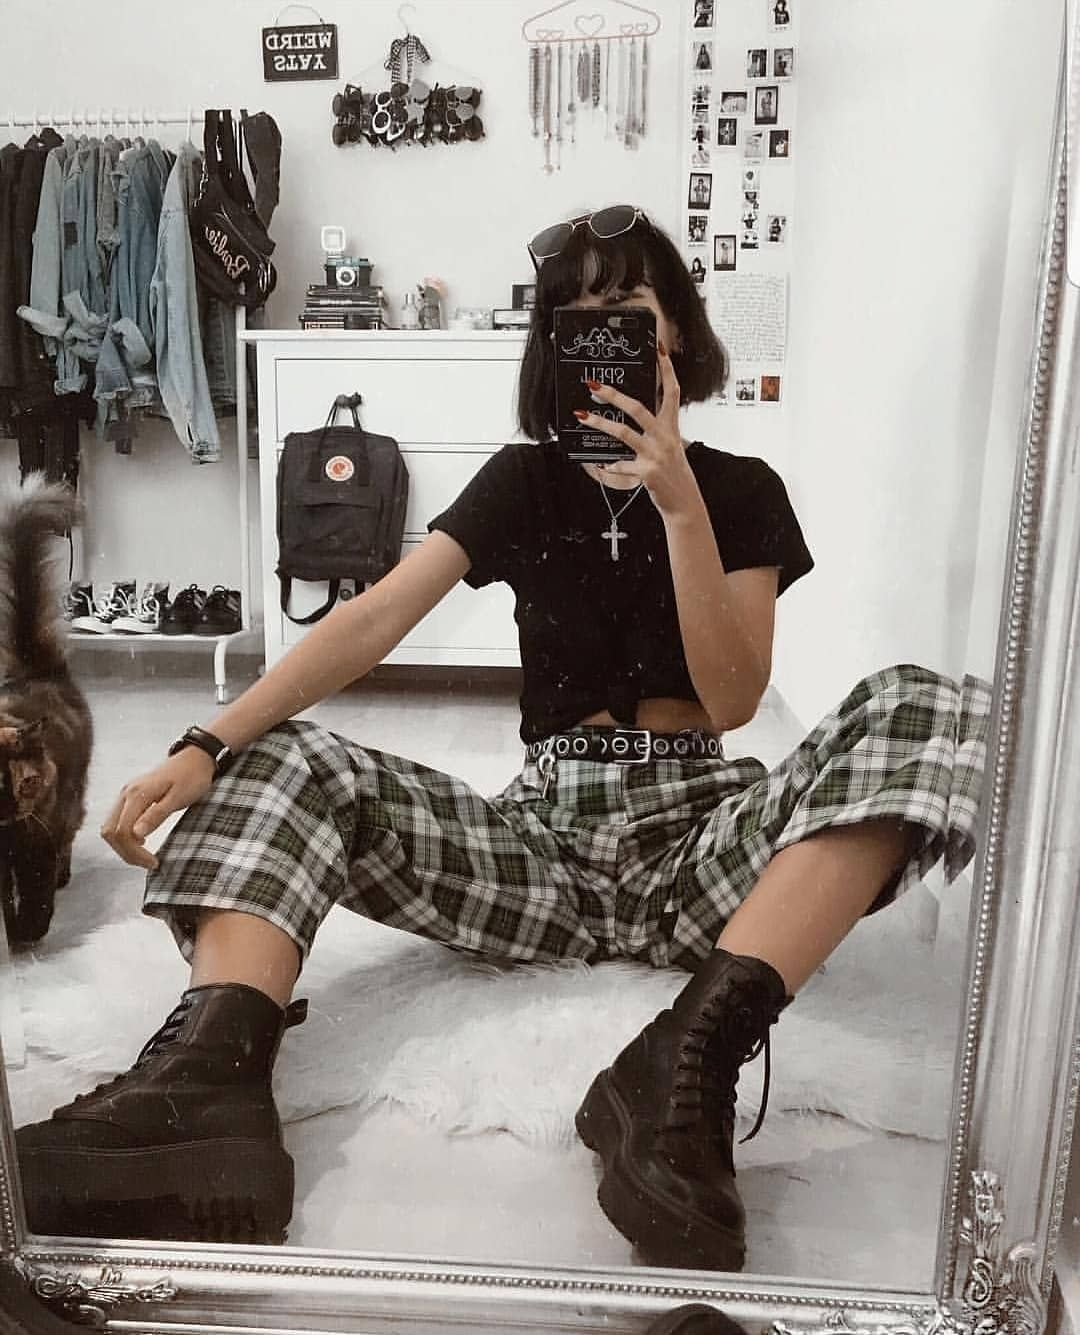 "grunge outfits on Instagram: ""happy happy × × #fashion #grunge #grungeaesthetic#grungefashion #grungeclothes#grungeaesthetic #90sfashion #aesthetic #tumblraesthetic…"""